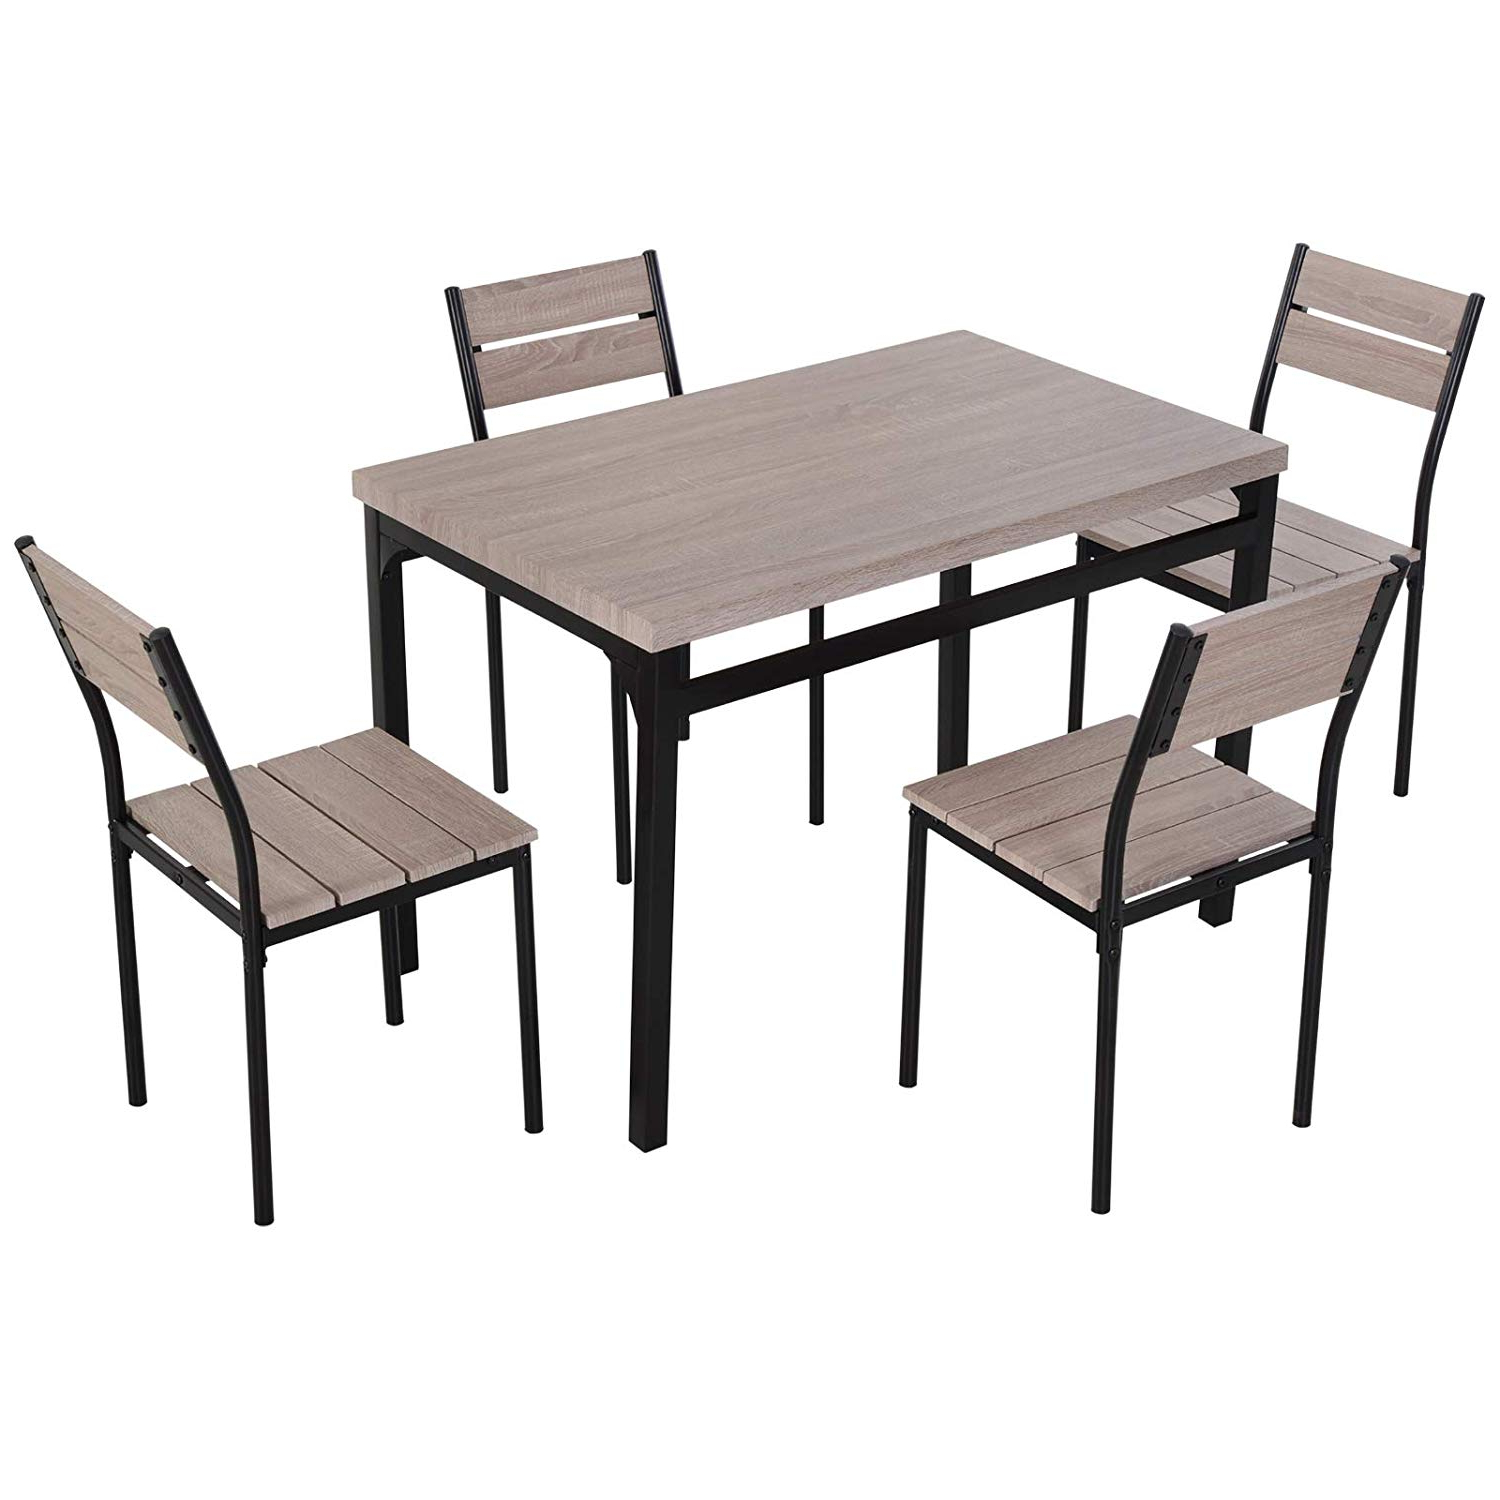 Preferred Transitional 4 Seating Drop Leaf Casual Dining Tables With Homcom 5 Piece Transitional Style Dining Room Table Set With Chairs (View 17 of 30)